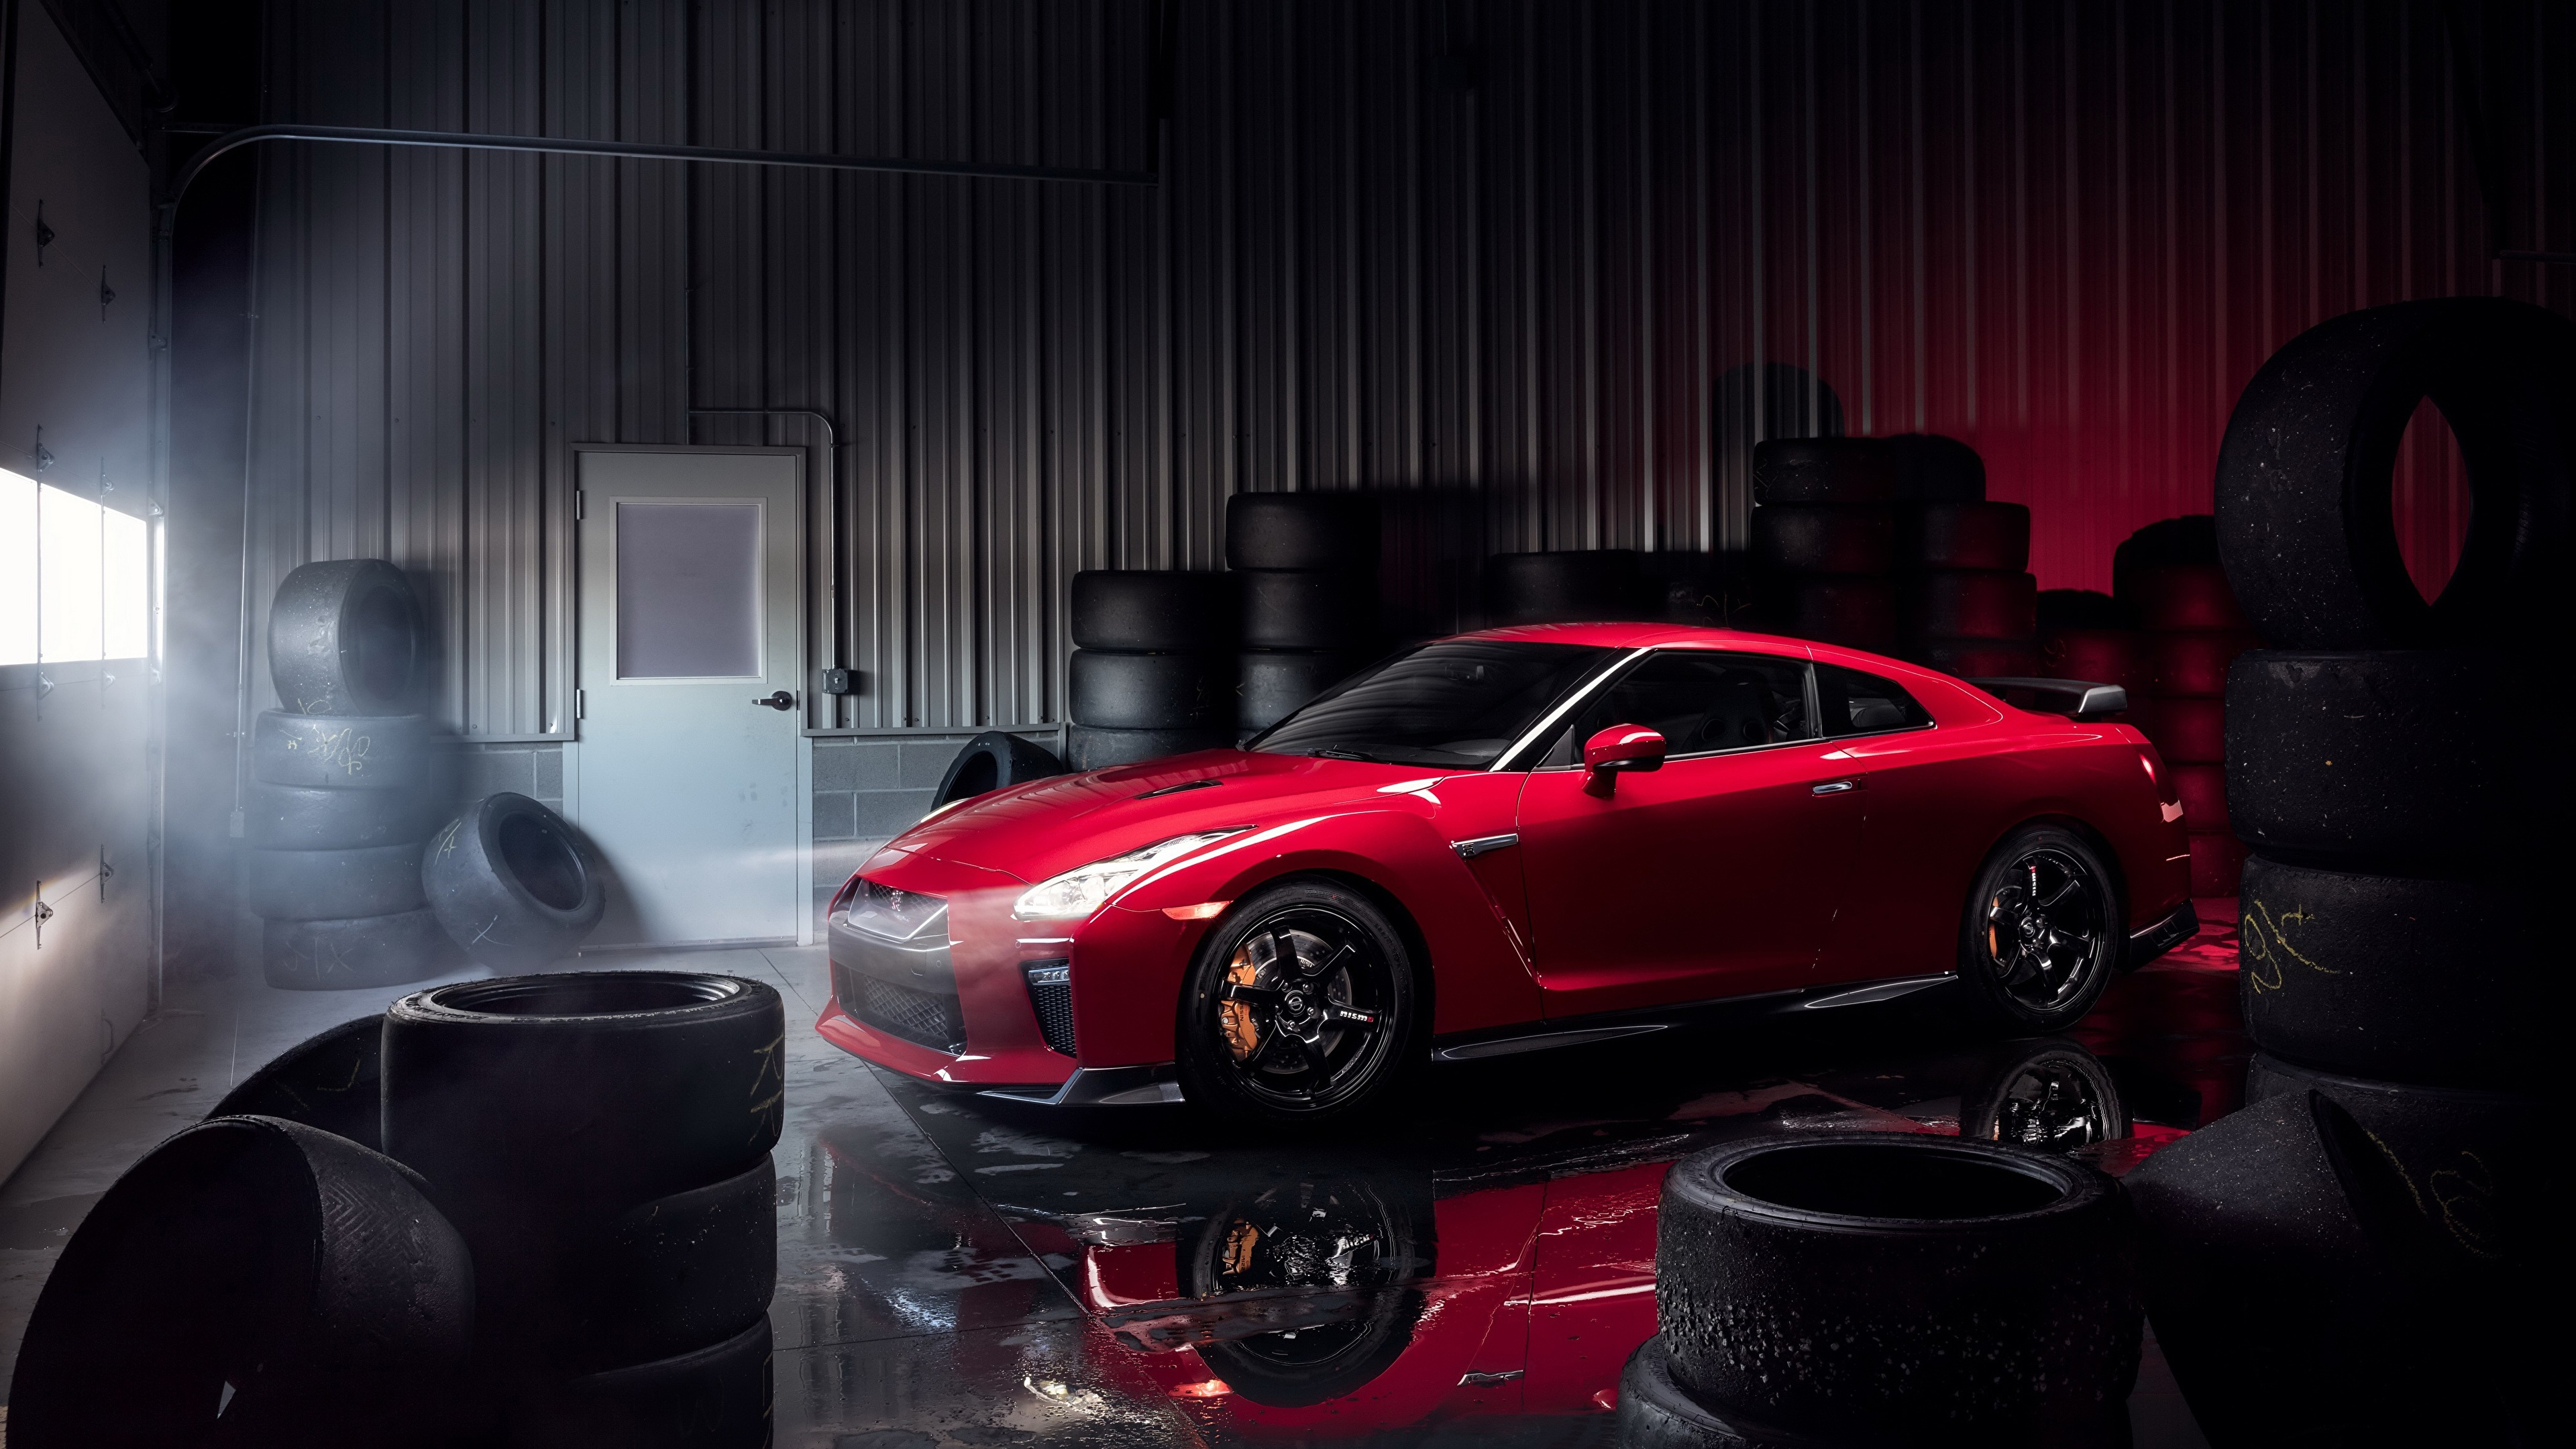 Picture Nissan GT-R Track Edition 2017 Garage Red Metallic 3840x2160